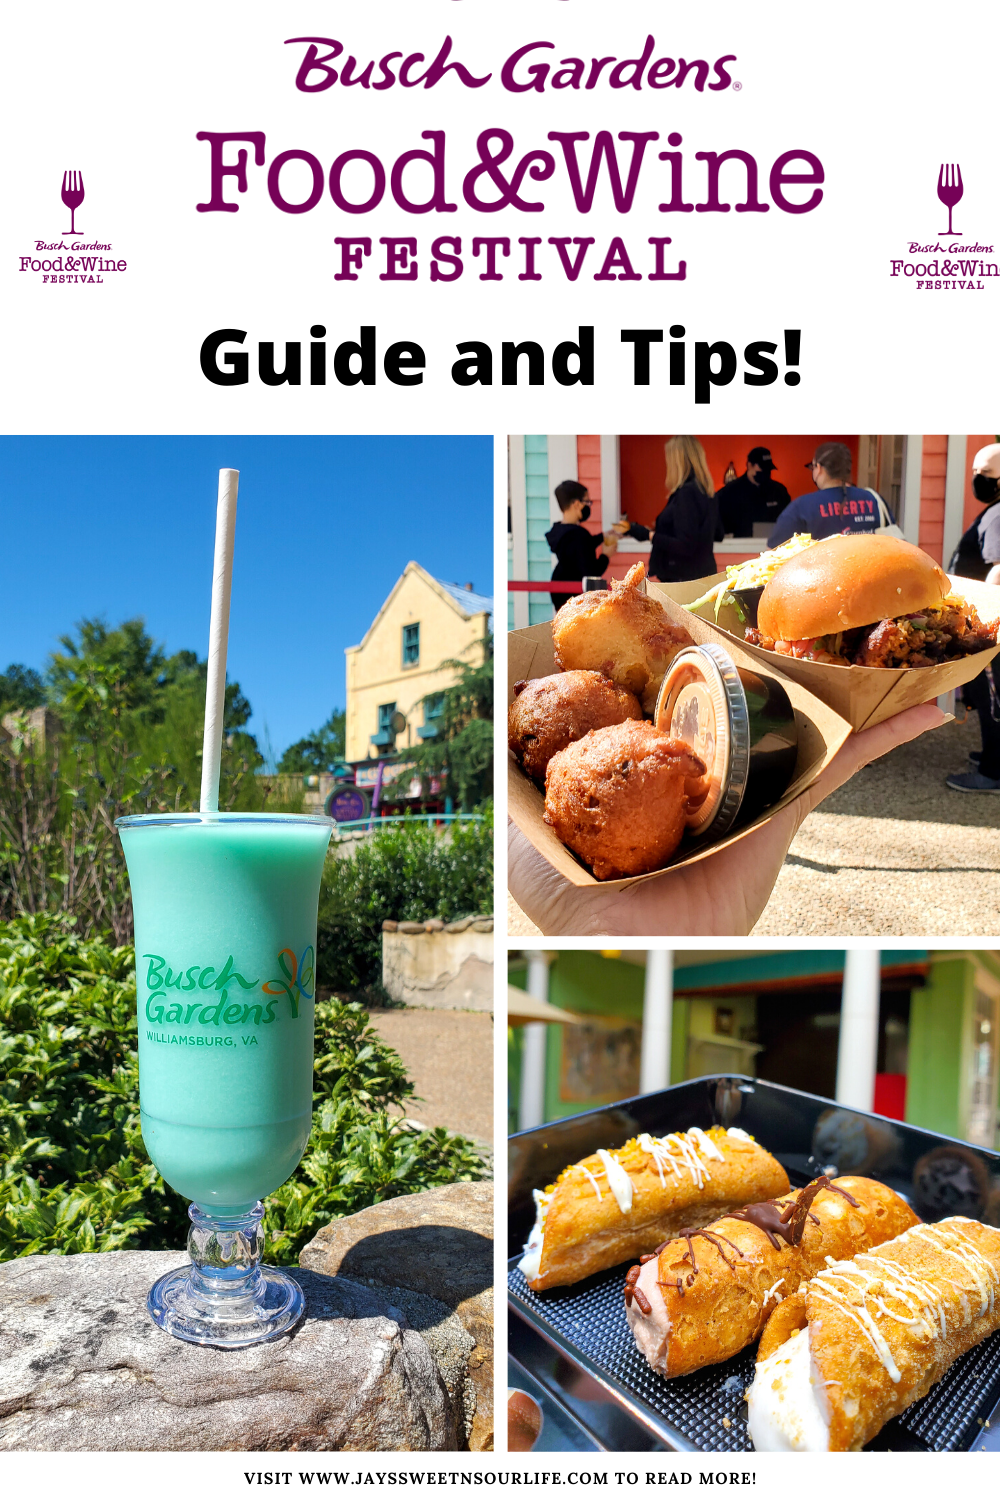 This spring, NEW flavors are in bloom at Busch Gardens with the return of the park's fan-favorite Food & Wine Festival going on now till May 23rd. Read my full Busch Gardens Williamsburg Food and Wine Festival 2021 Guide filled with helpful info and my top foodie picks for this year!